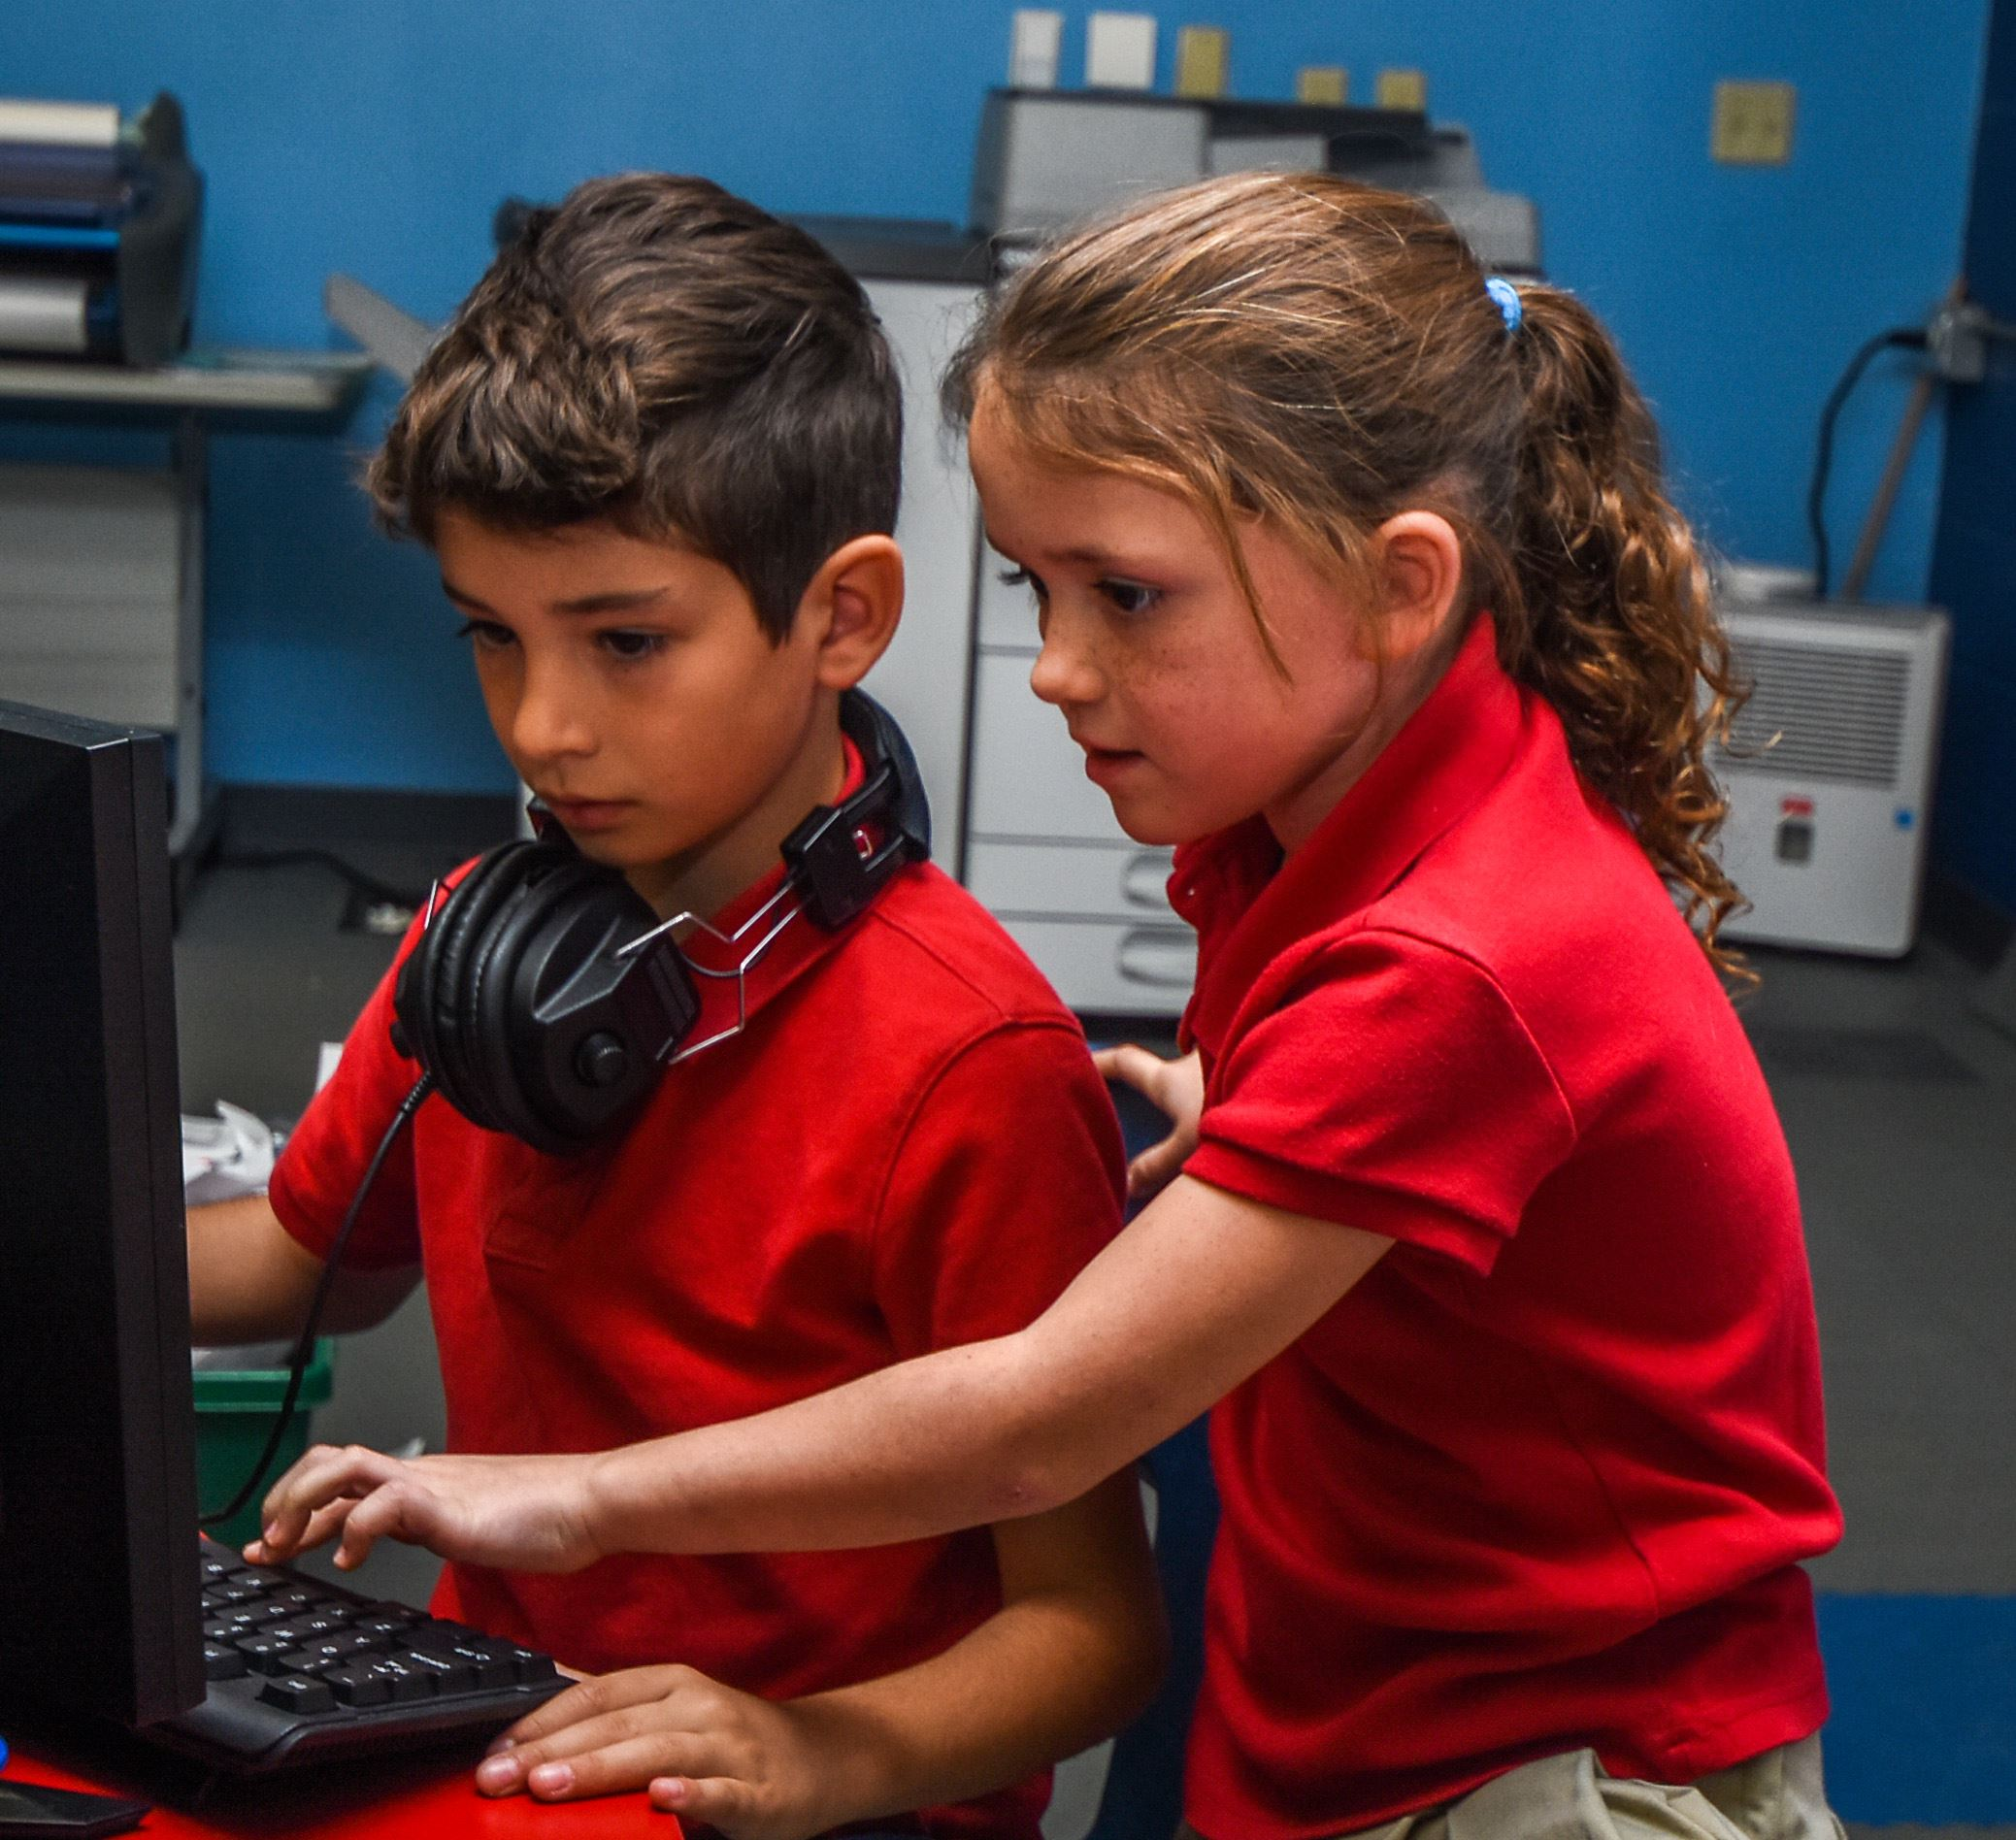 A girl assisting a boy on a computer in the STEM lab.